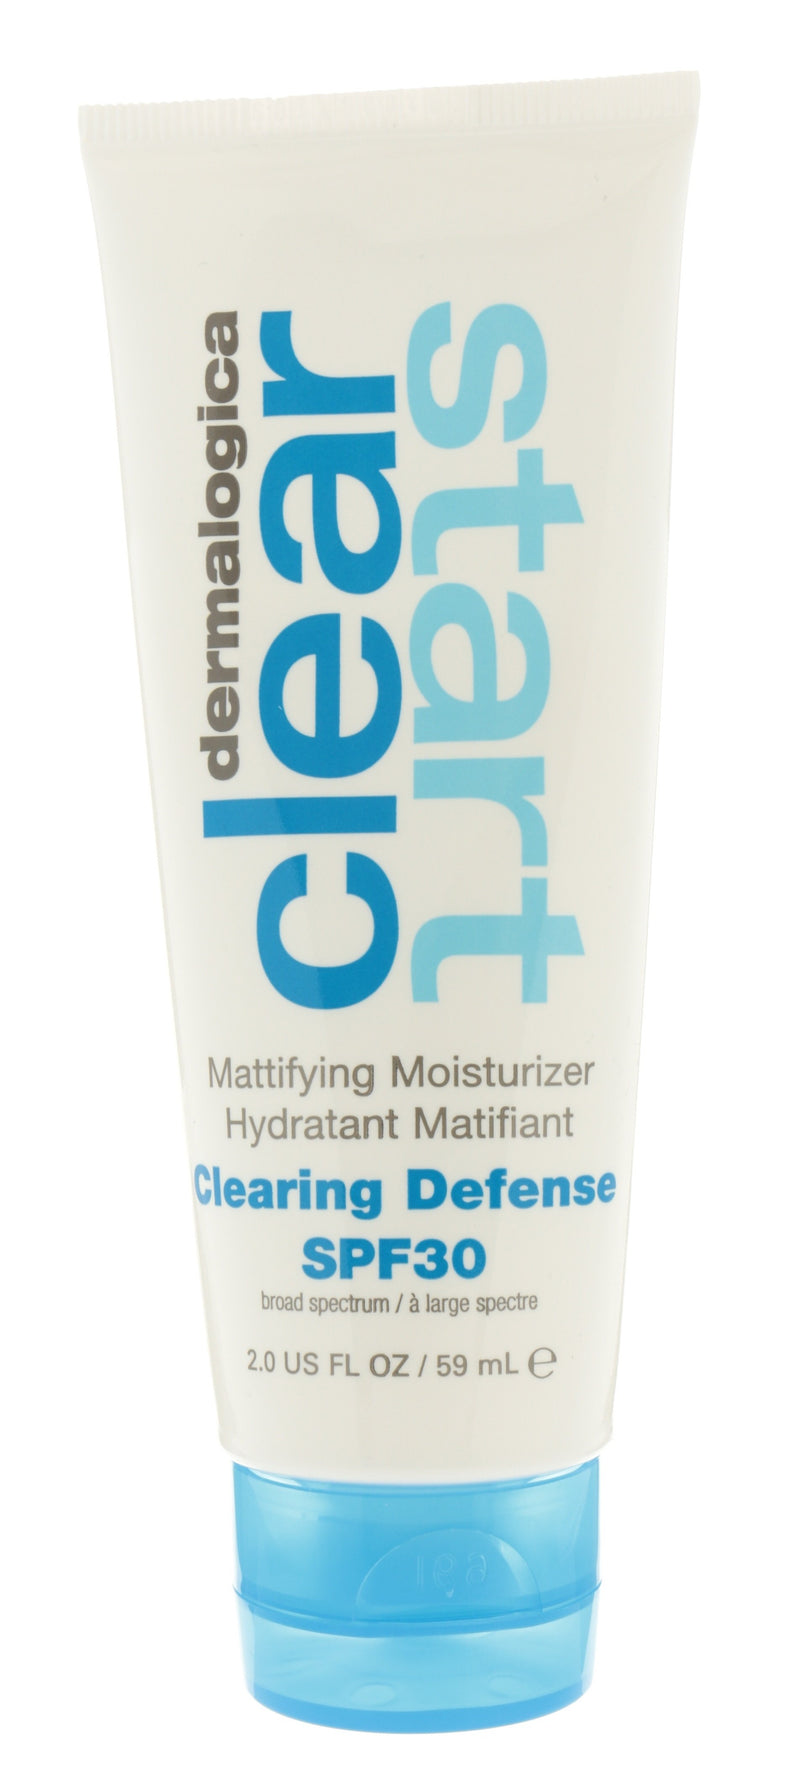 DERMALOGICA Clearing Defense SPF30